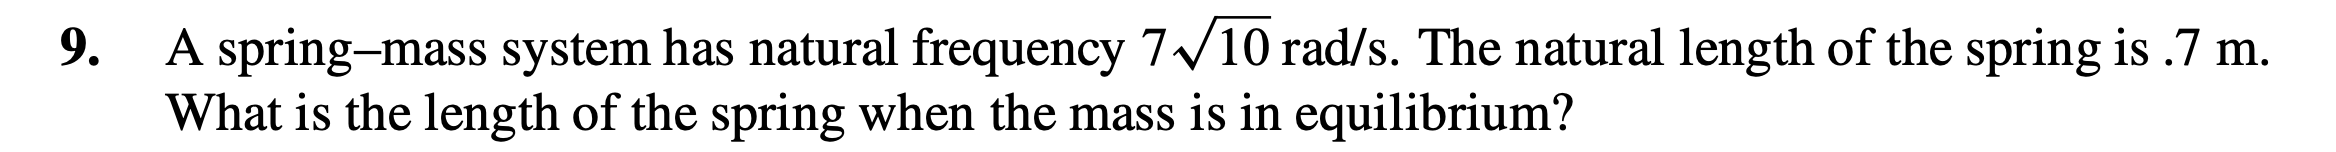 A spring-mass system has natural frequency 7/10 rad/s. The natural length of the spring is .7 m. What is the length of the spring when the mass is in equilibrium? 9.